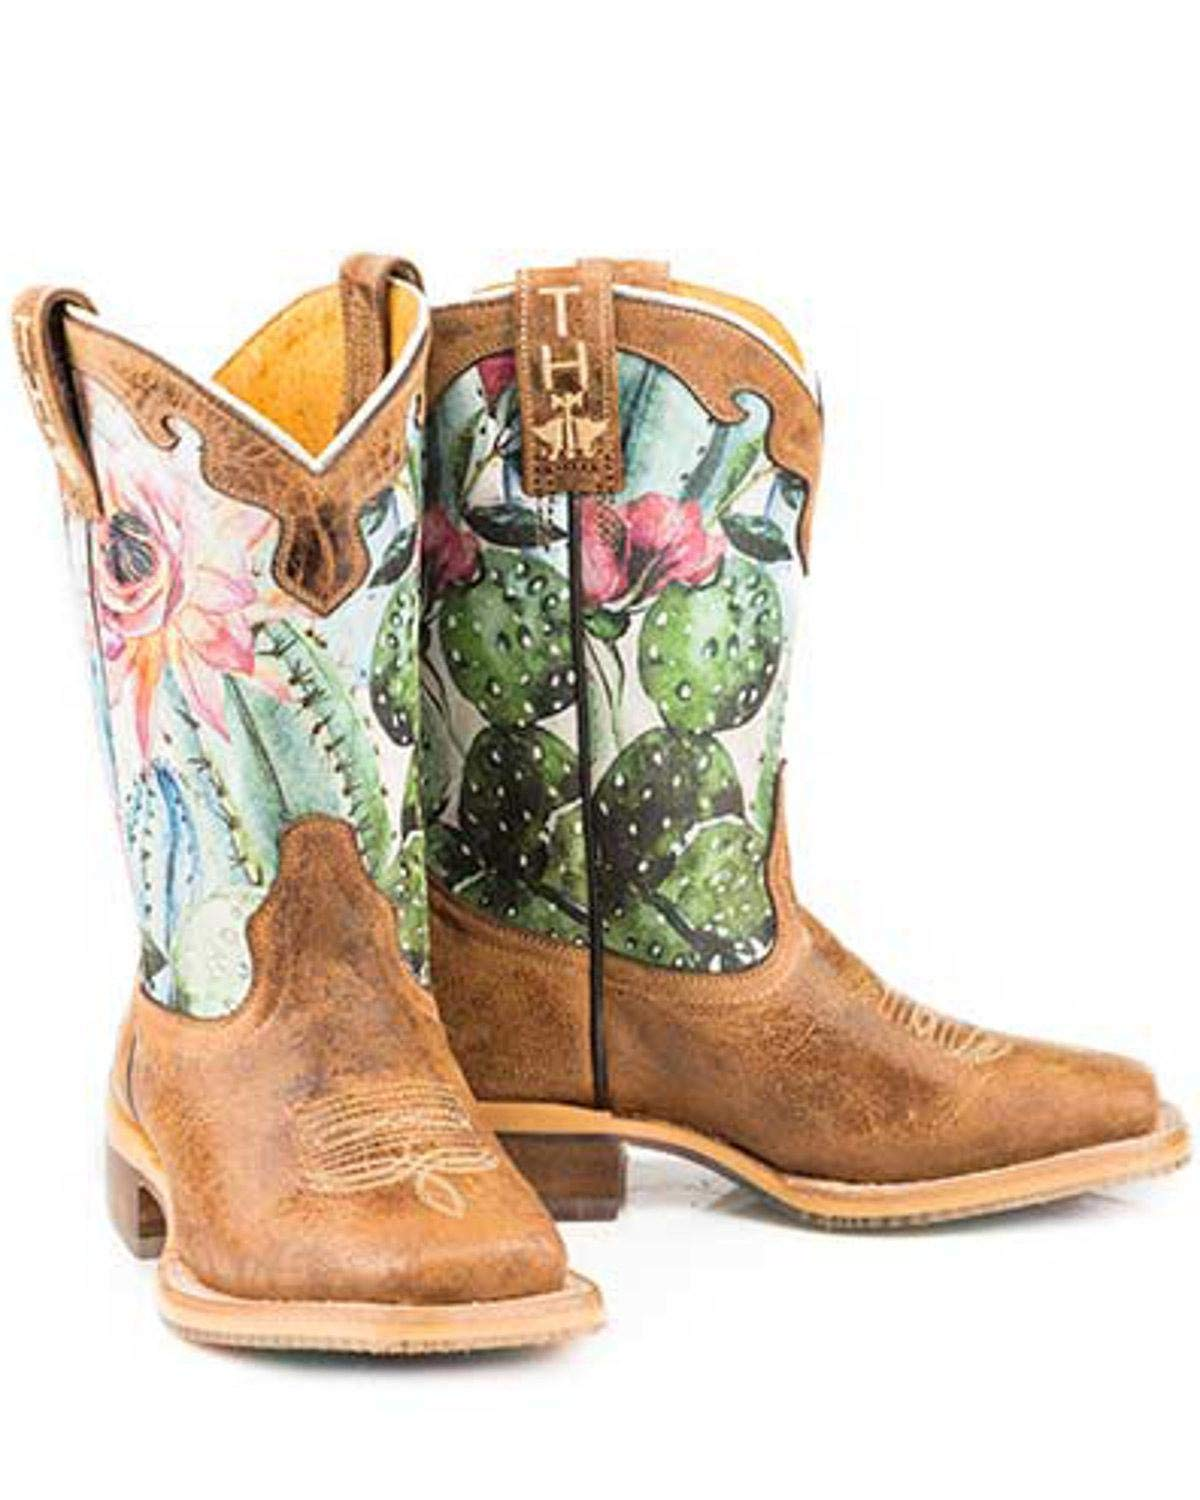 Tin Haul Girls' Cactilicious Embroidered Western Boot Square Toe Brown 1 D by Tin Haul Boots